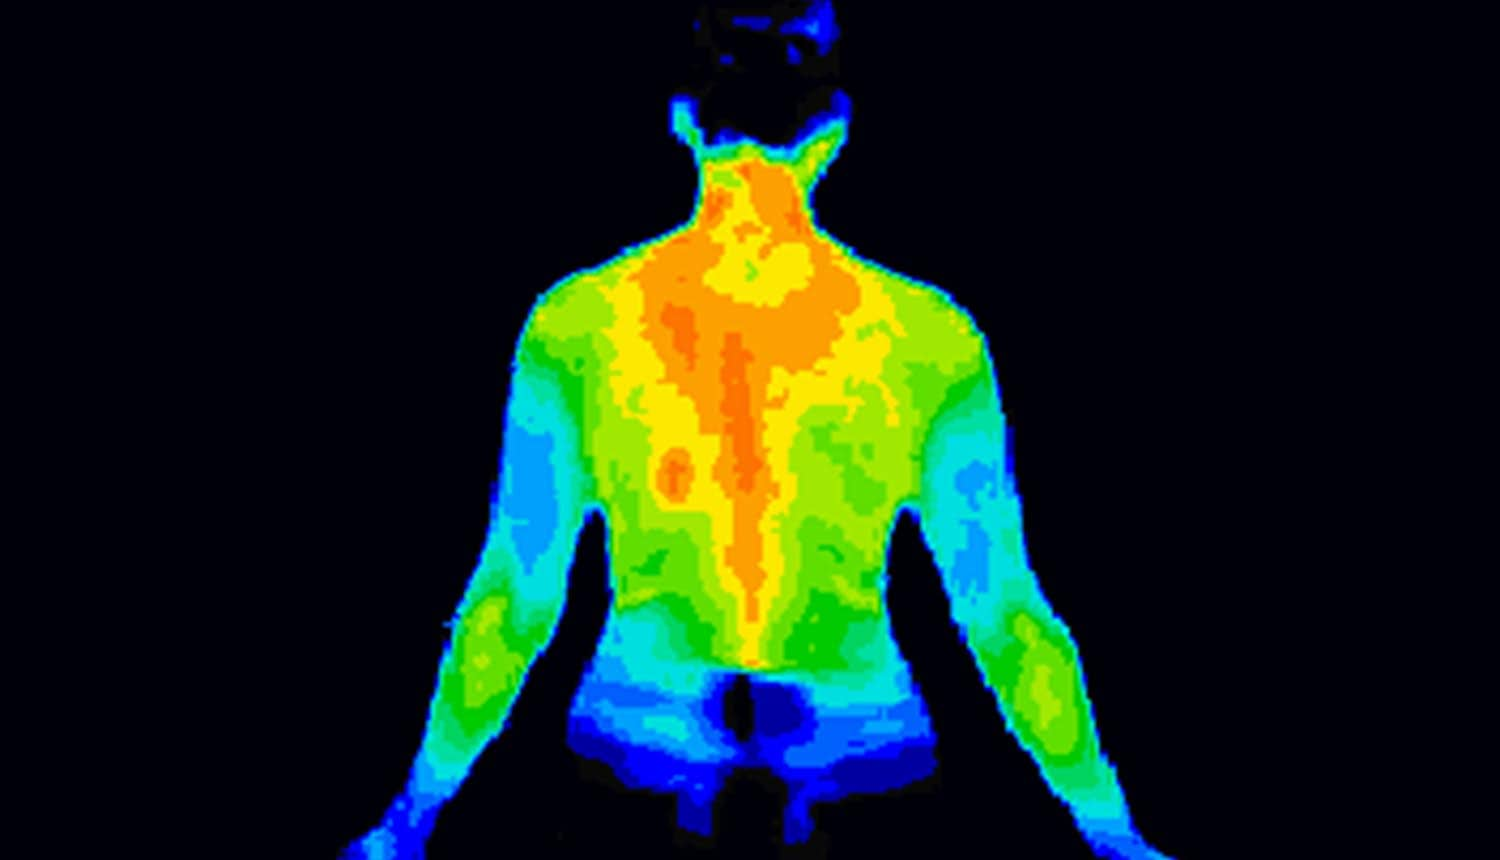 Thermographic image of the back of the upper body showing medical data leaks